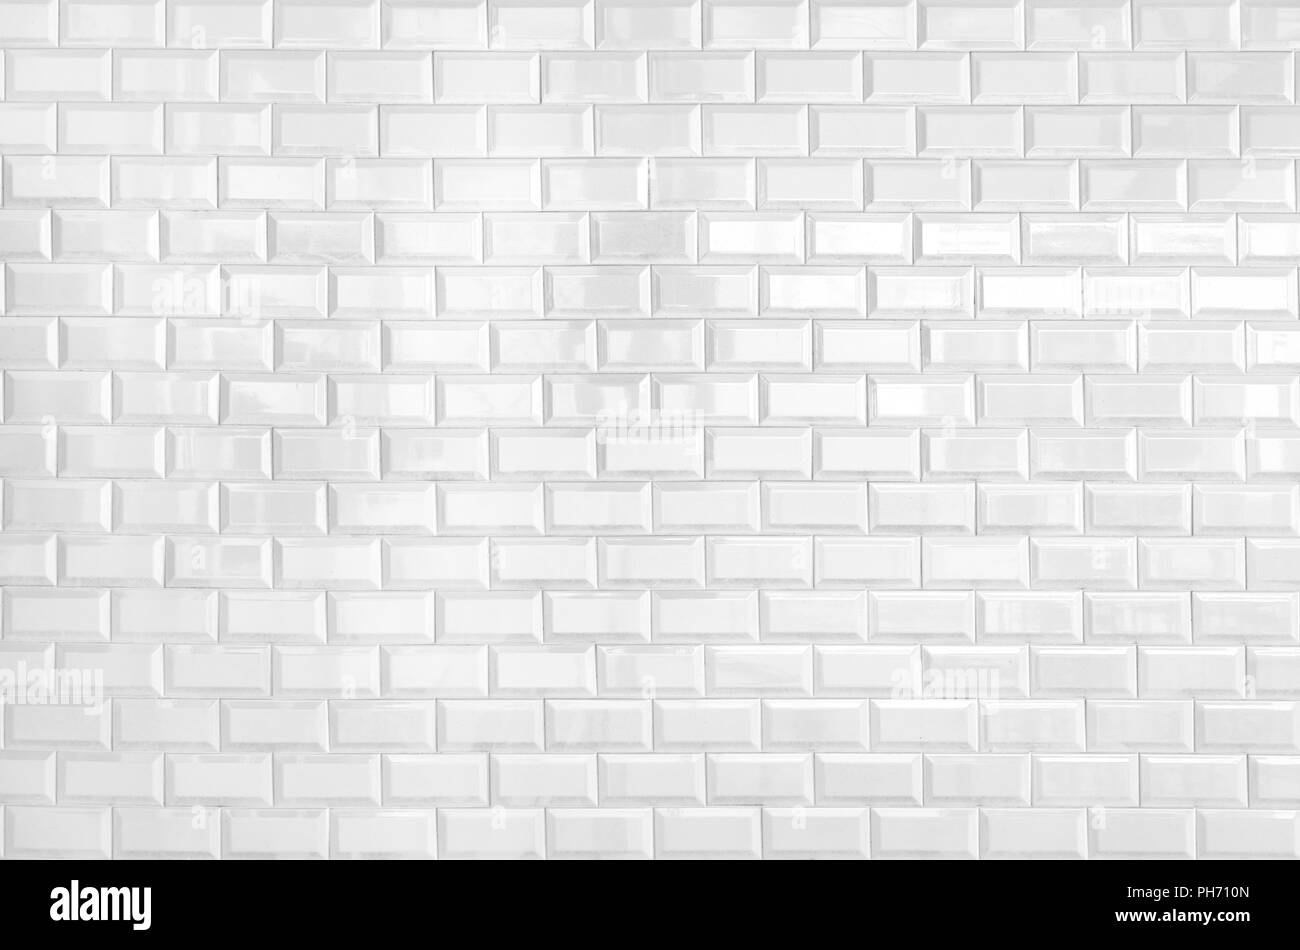 White Brick Wall Texture Background With Space For Text White Bricks Wallpaper Home Interior Decoration Architecture Concept Stock Photo Alamy